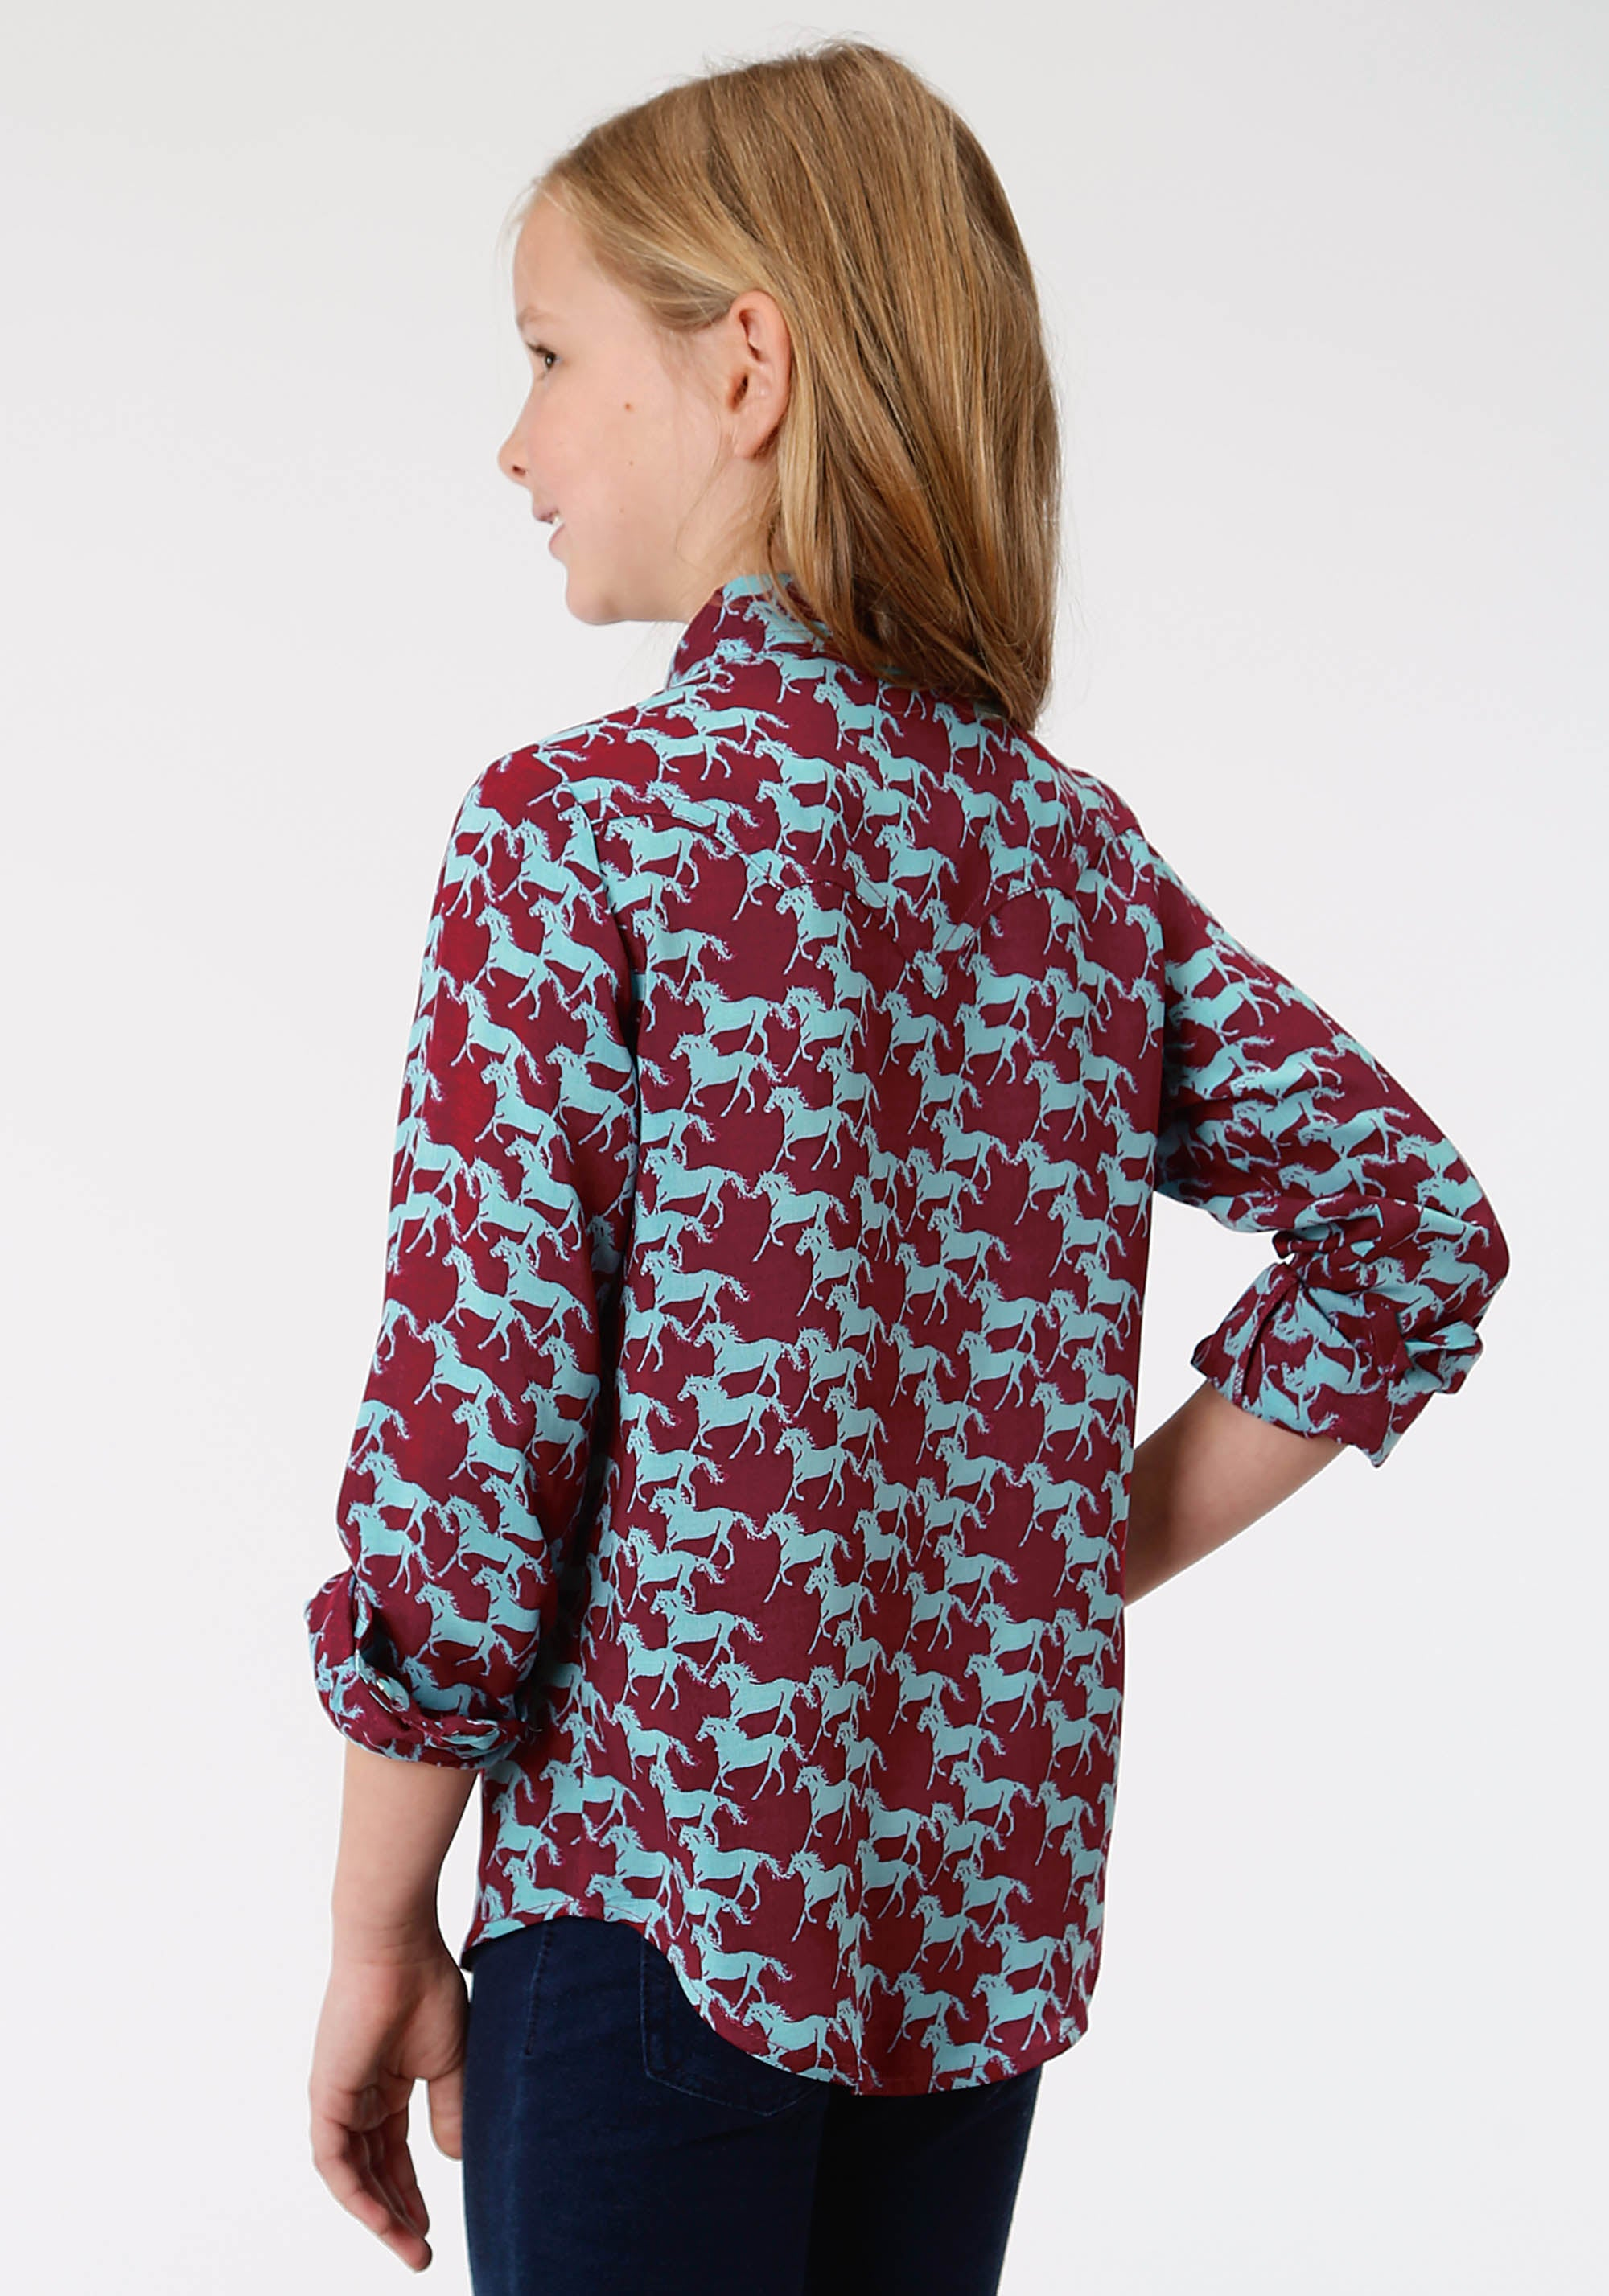 ROPER GIRLS RED 1013 PRINTED RAYON LS WESTERN SHIRT FIVE STAR GIRLS LONG SLEEVE